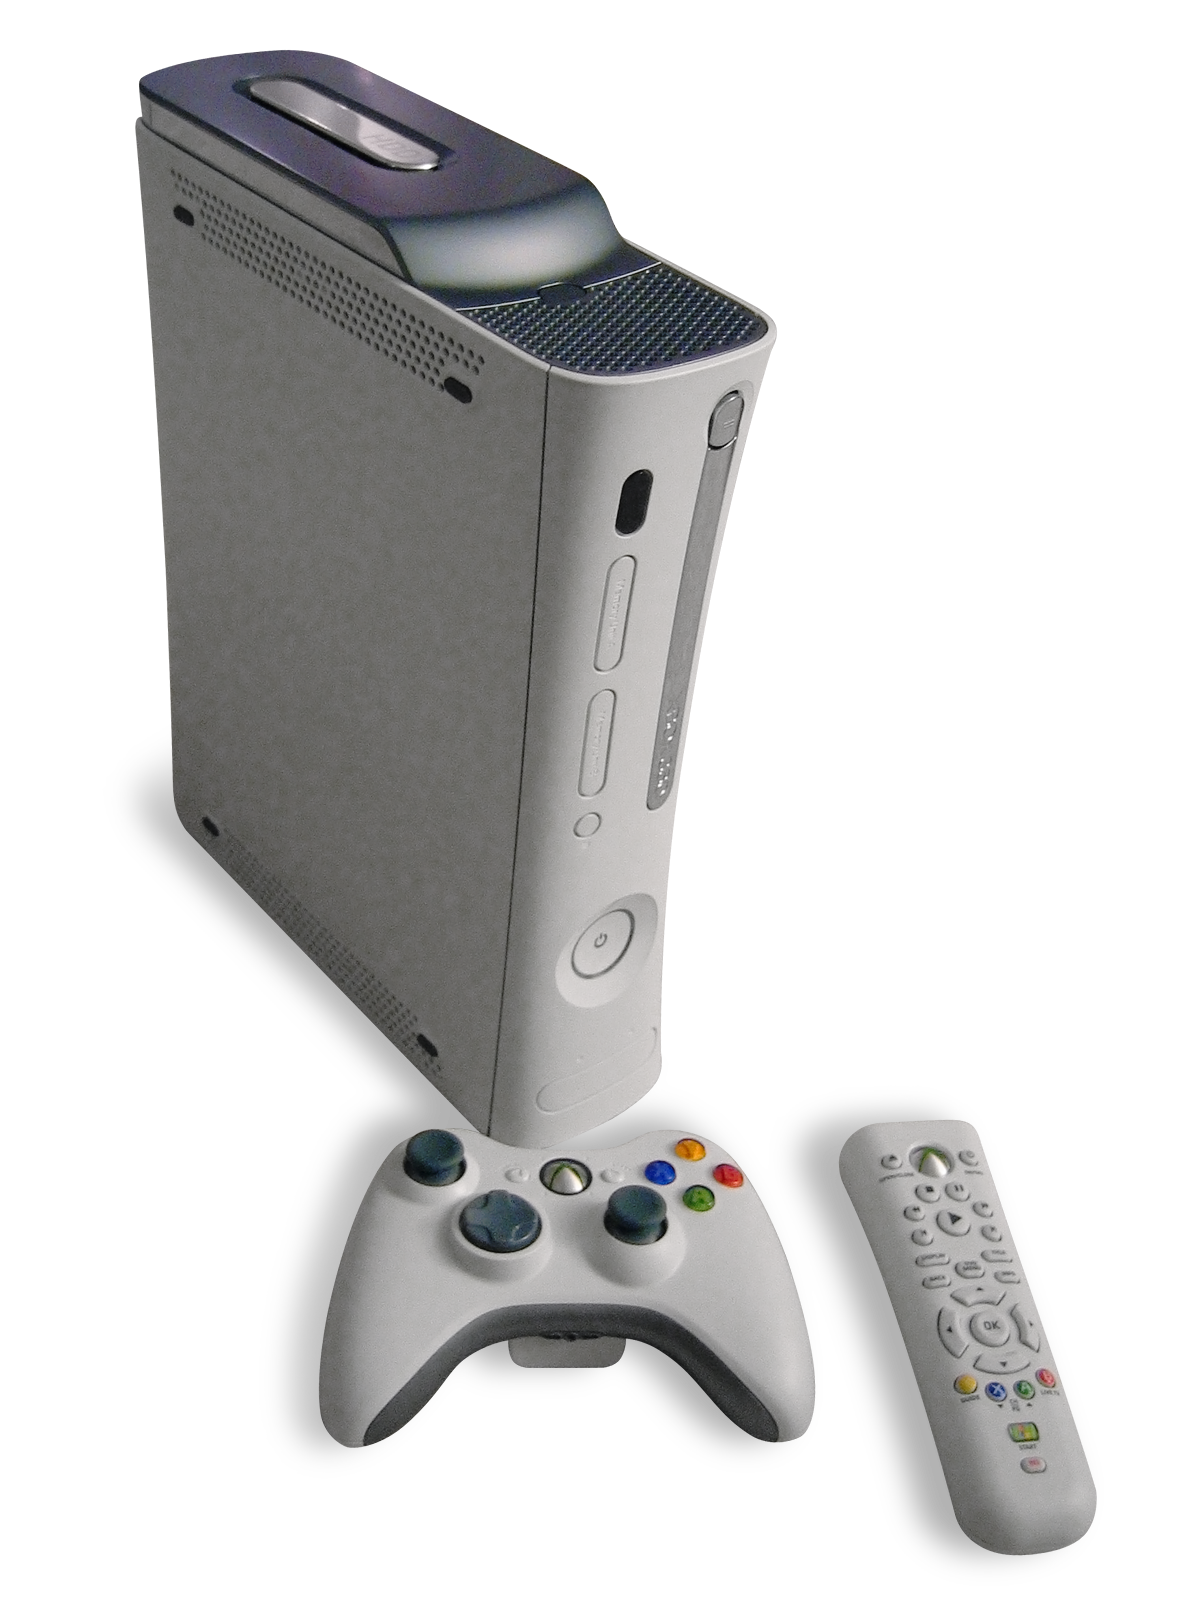 Xbox 360 PNG - 97613